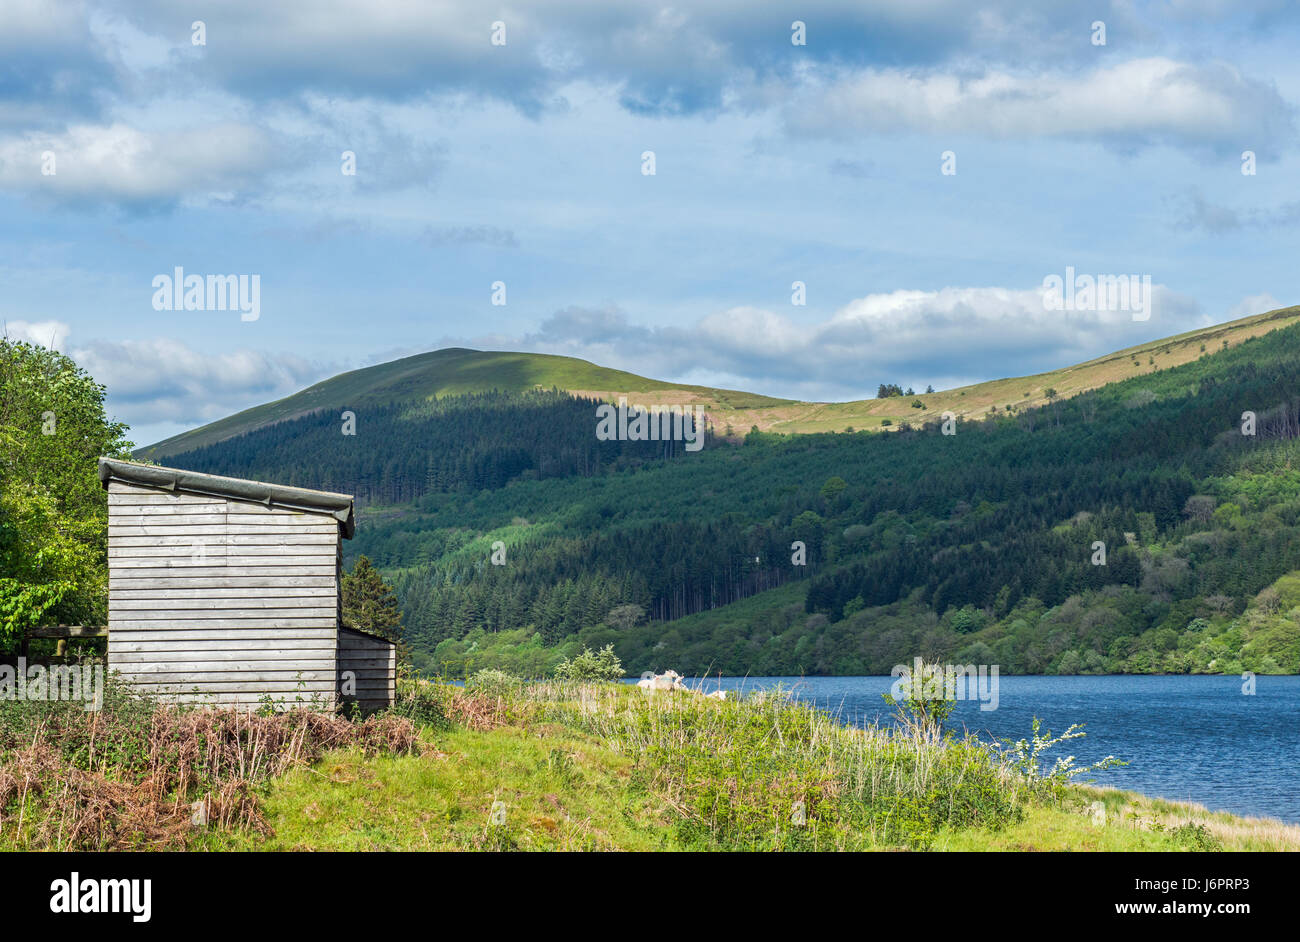 Top of the Talybont Reservoir in the Central Brecon Beacons, Powys, South Wales - Stock Image